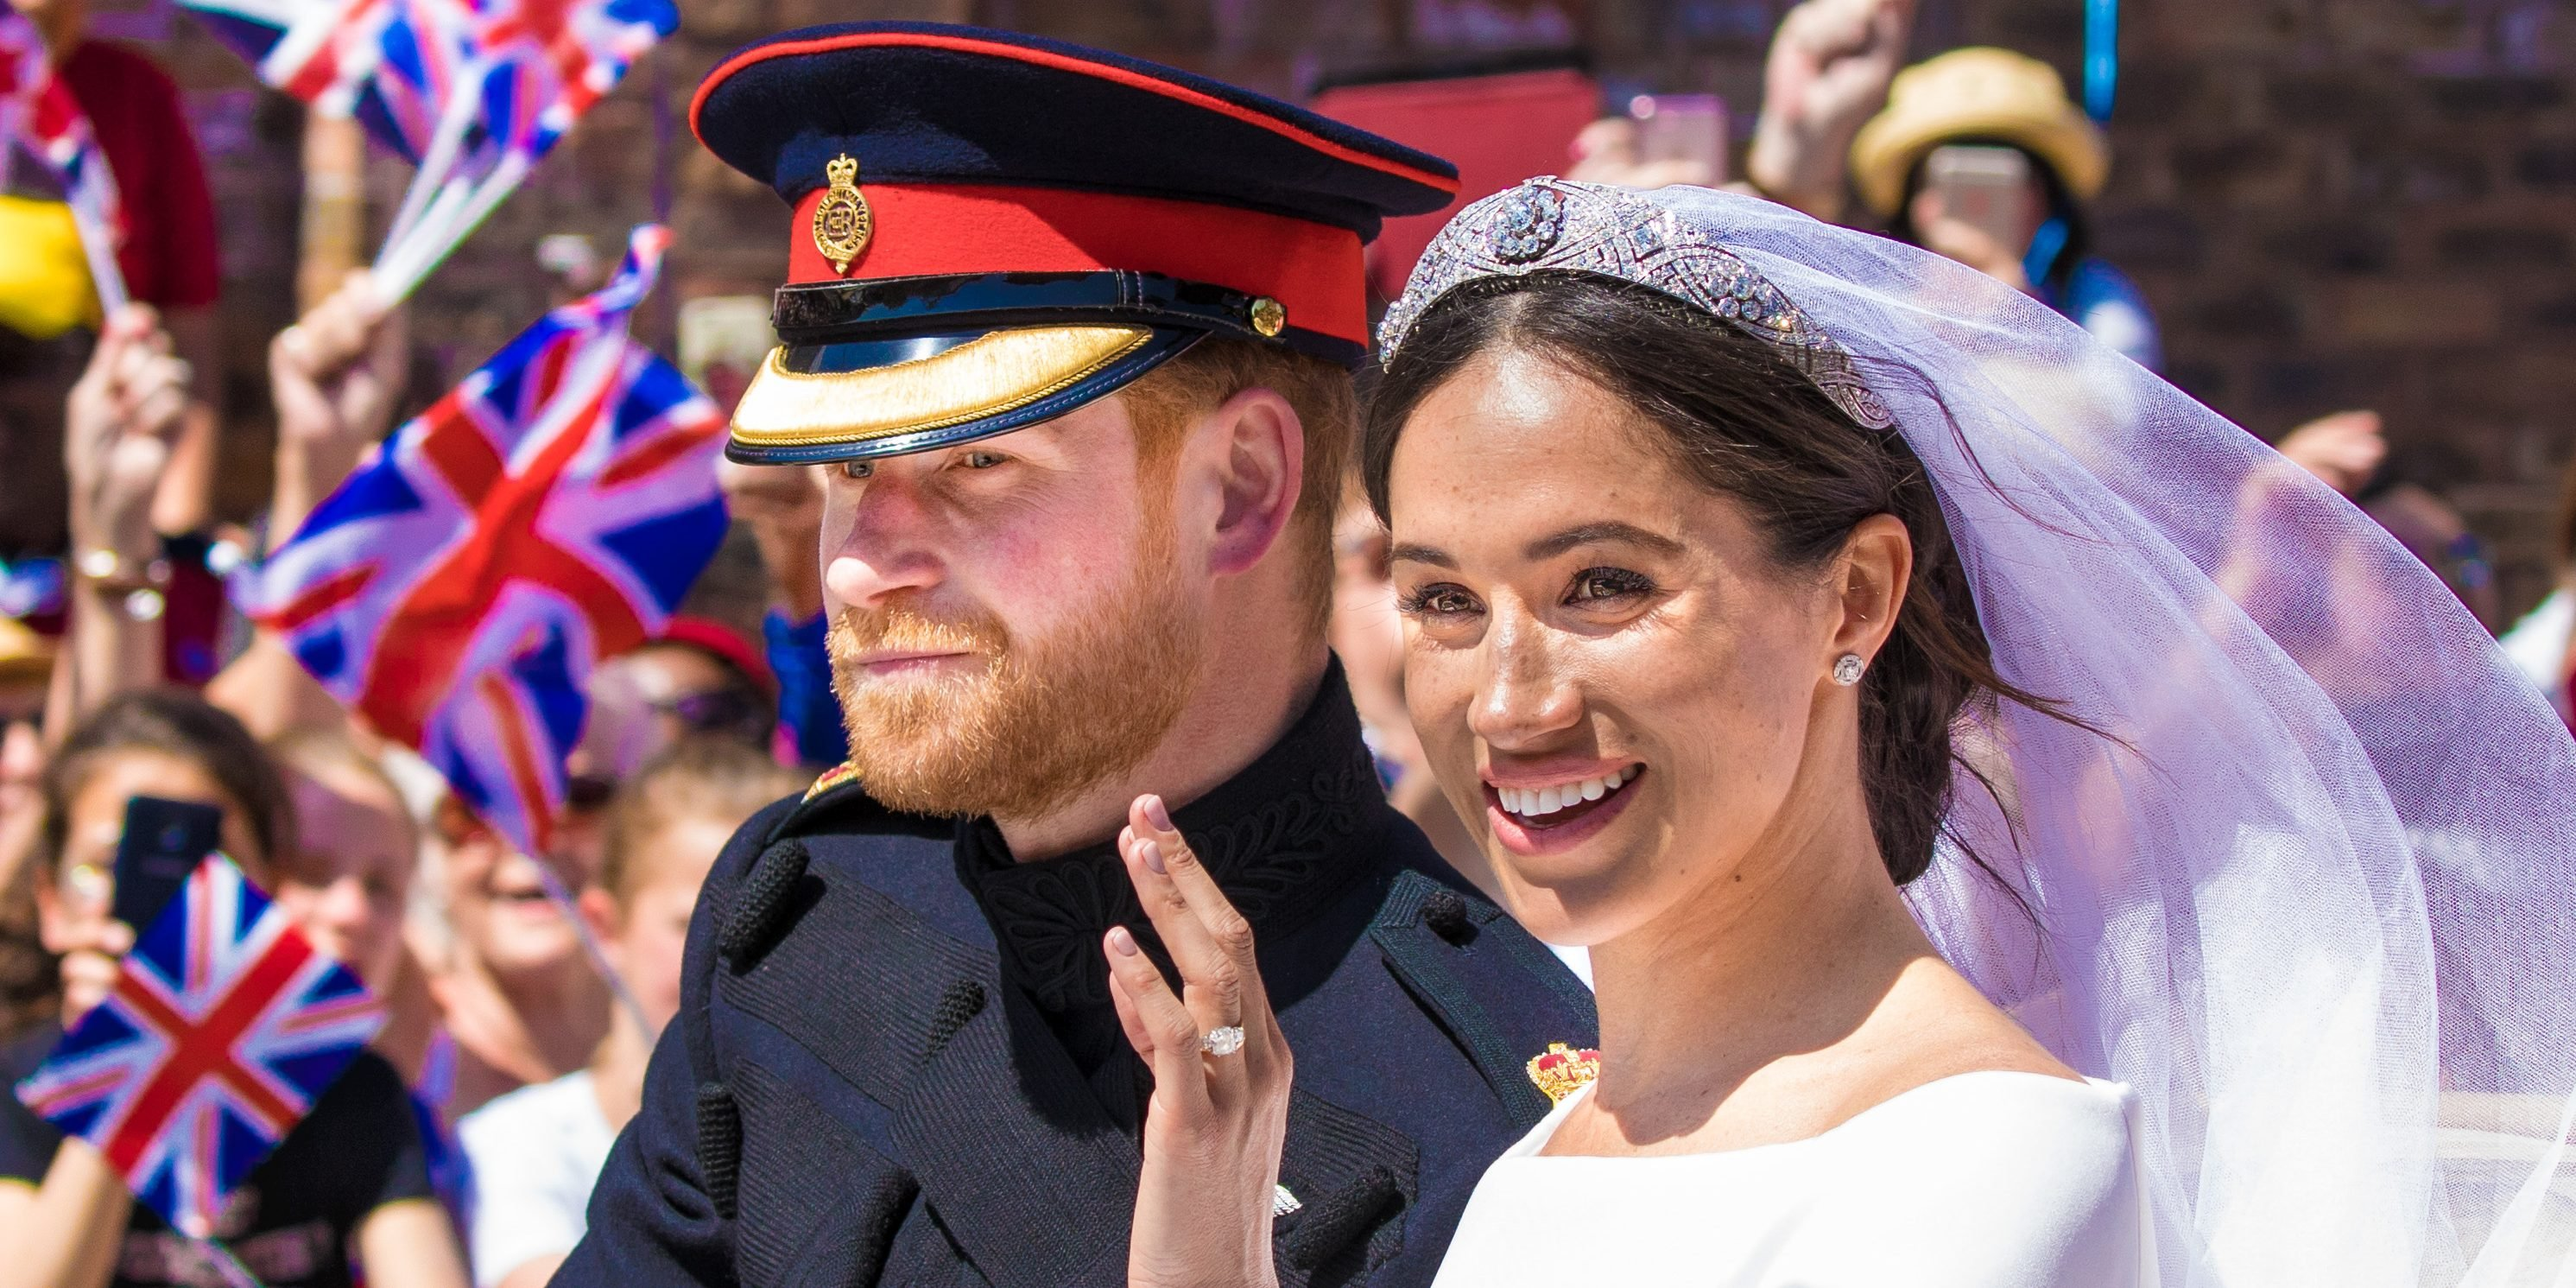 Bookies reveal odds on Harry and Meghan getting a divorce in next five years